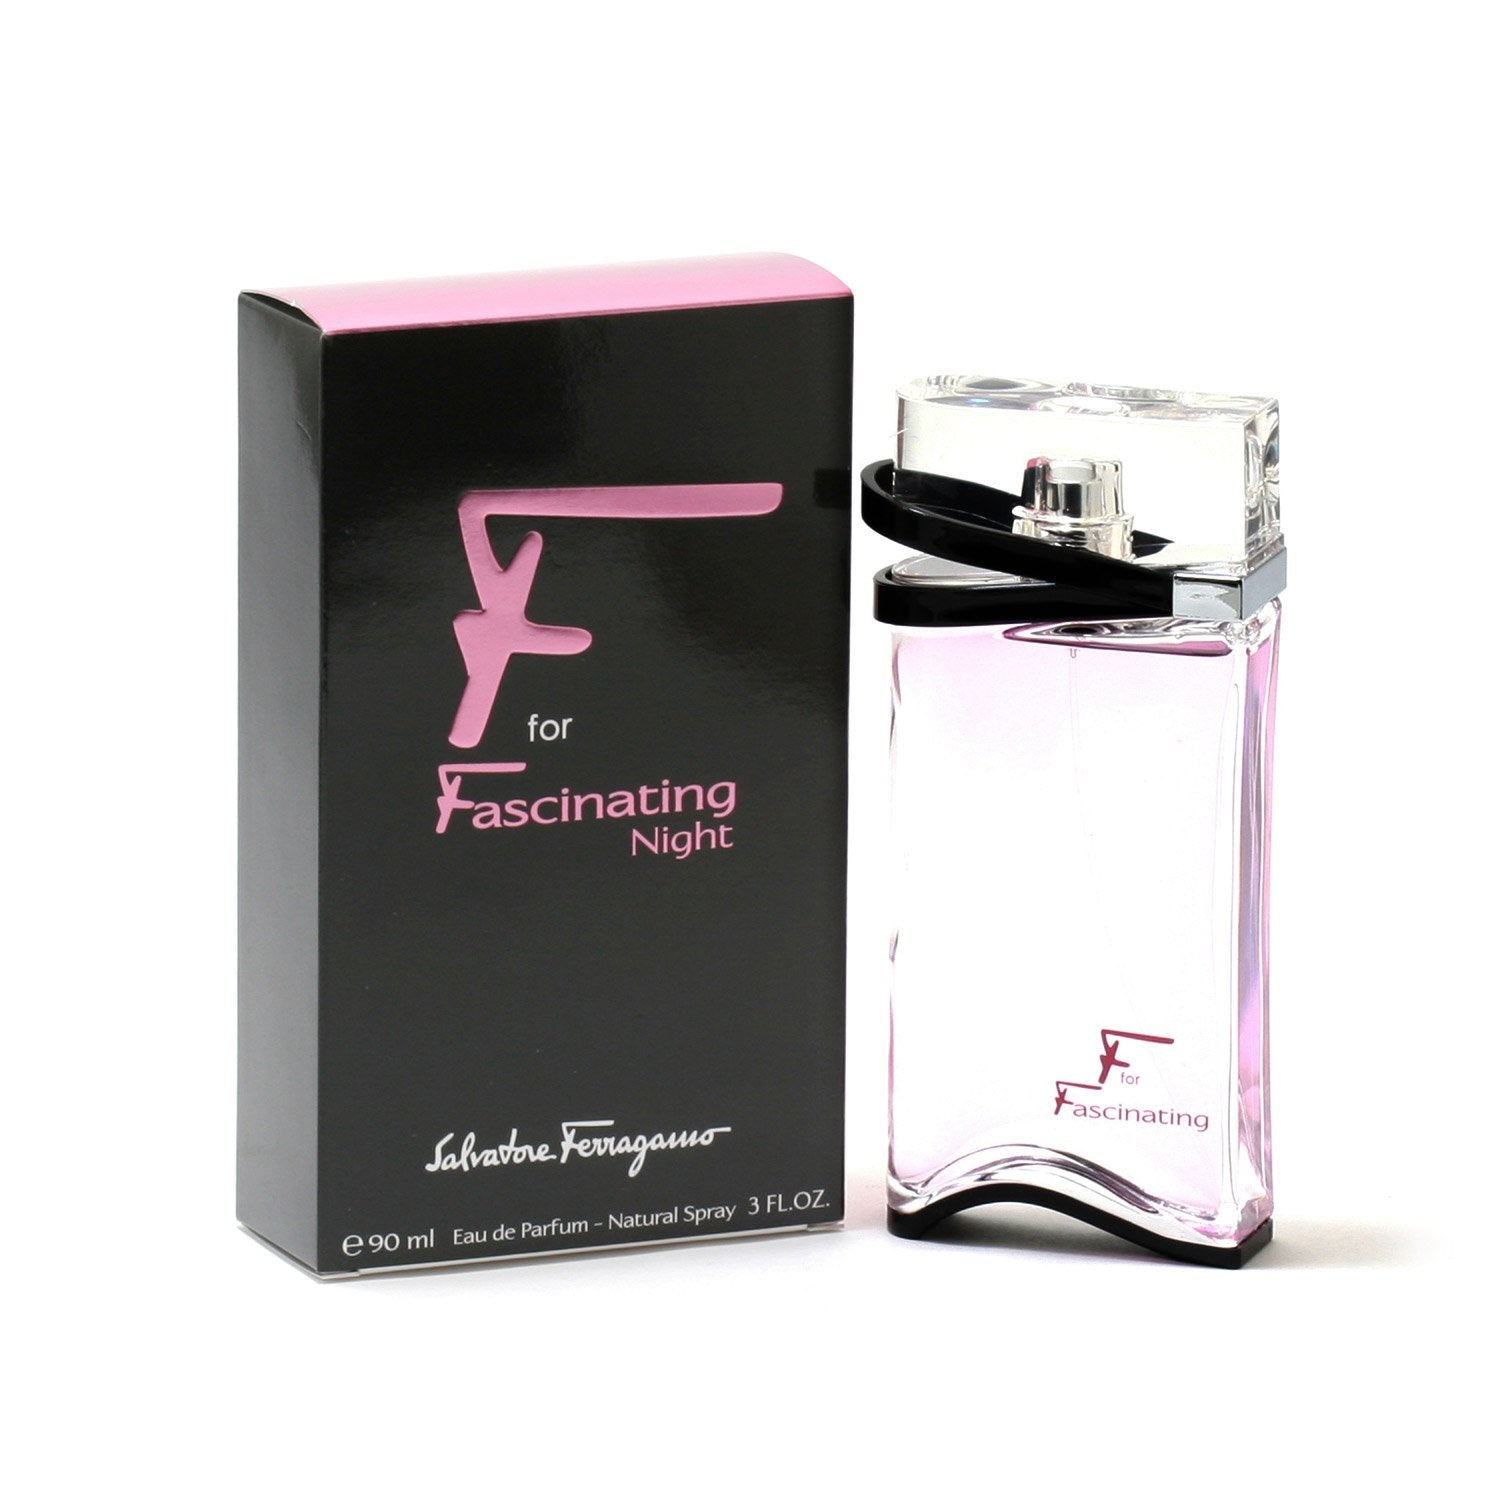 Perfume - F FOR FASCINATING NIGHT FOR WOMEN BY SALVATORE FERRAGAMO - EAU DE PARFUM SPRAY, 3.0 OZ